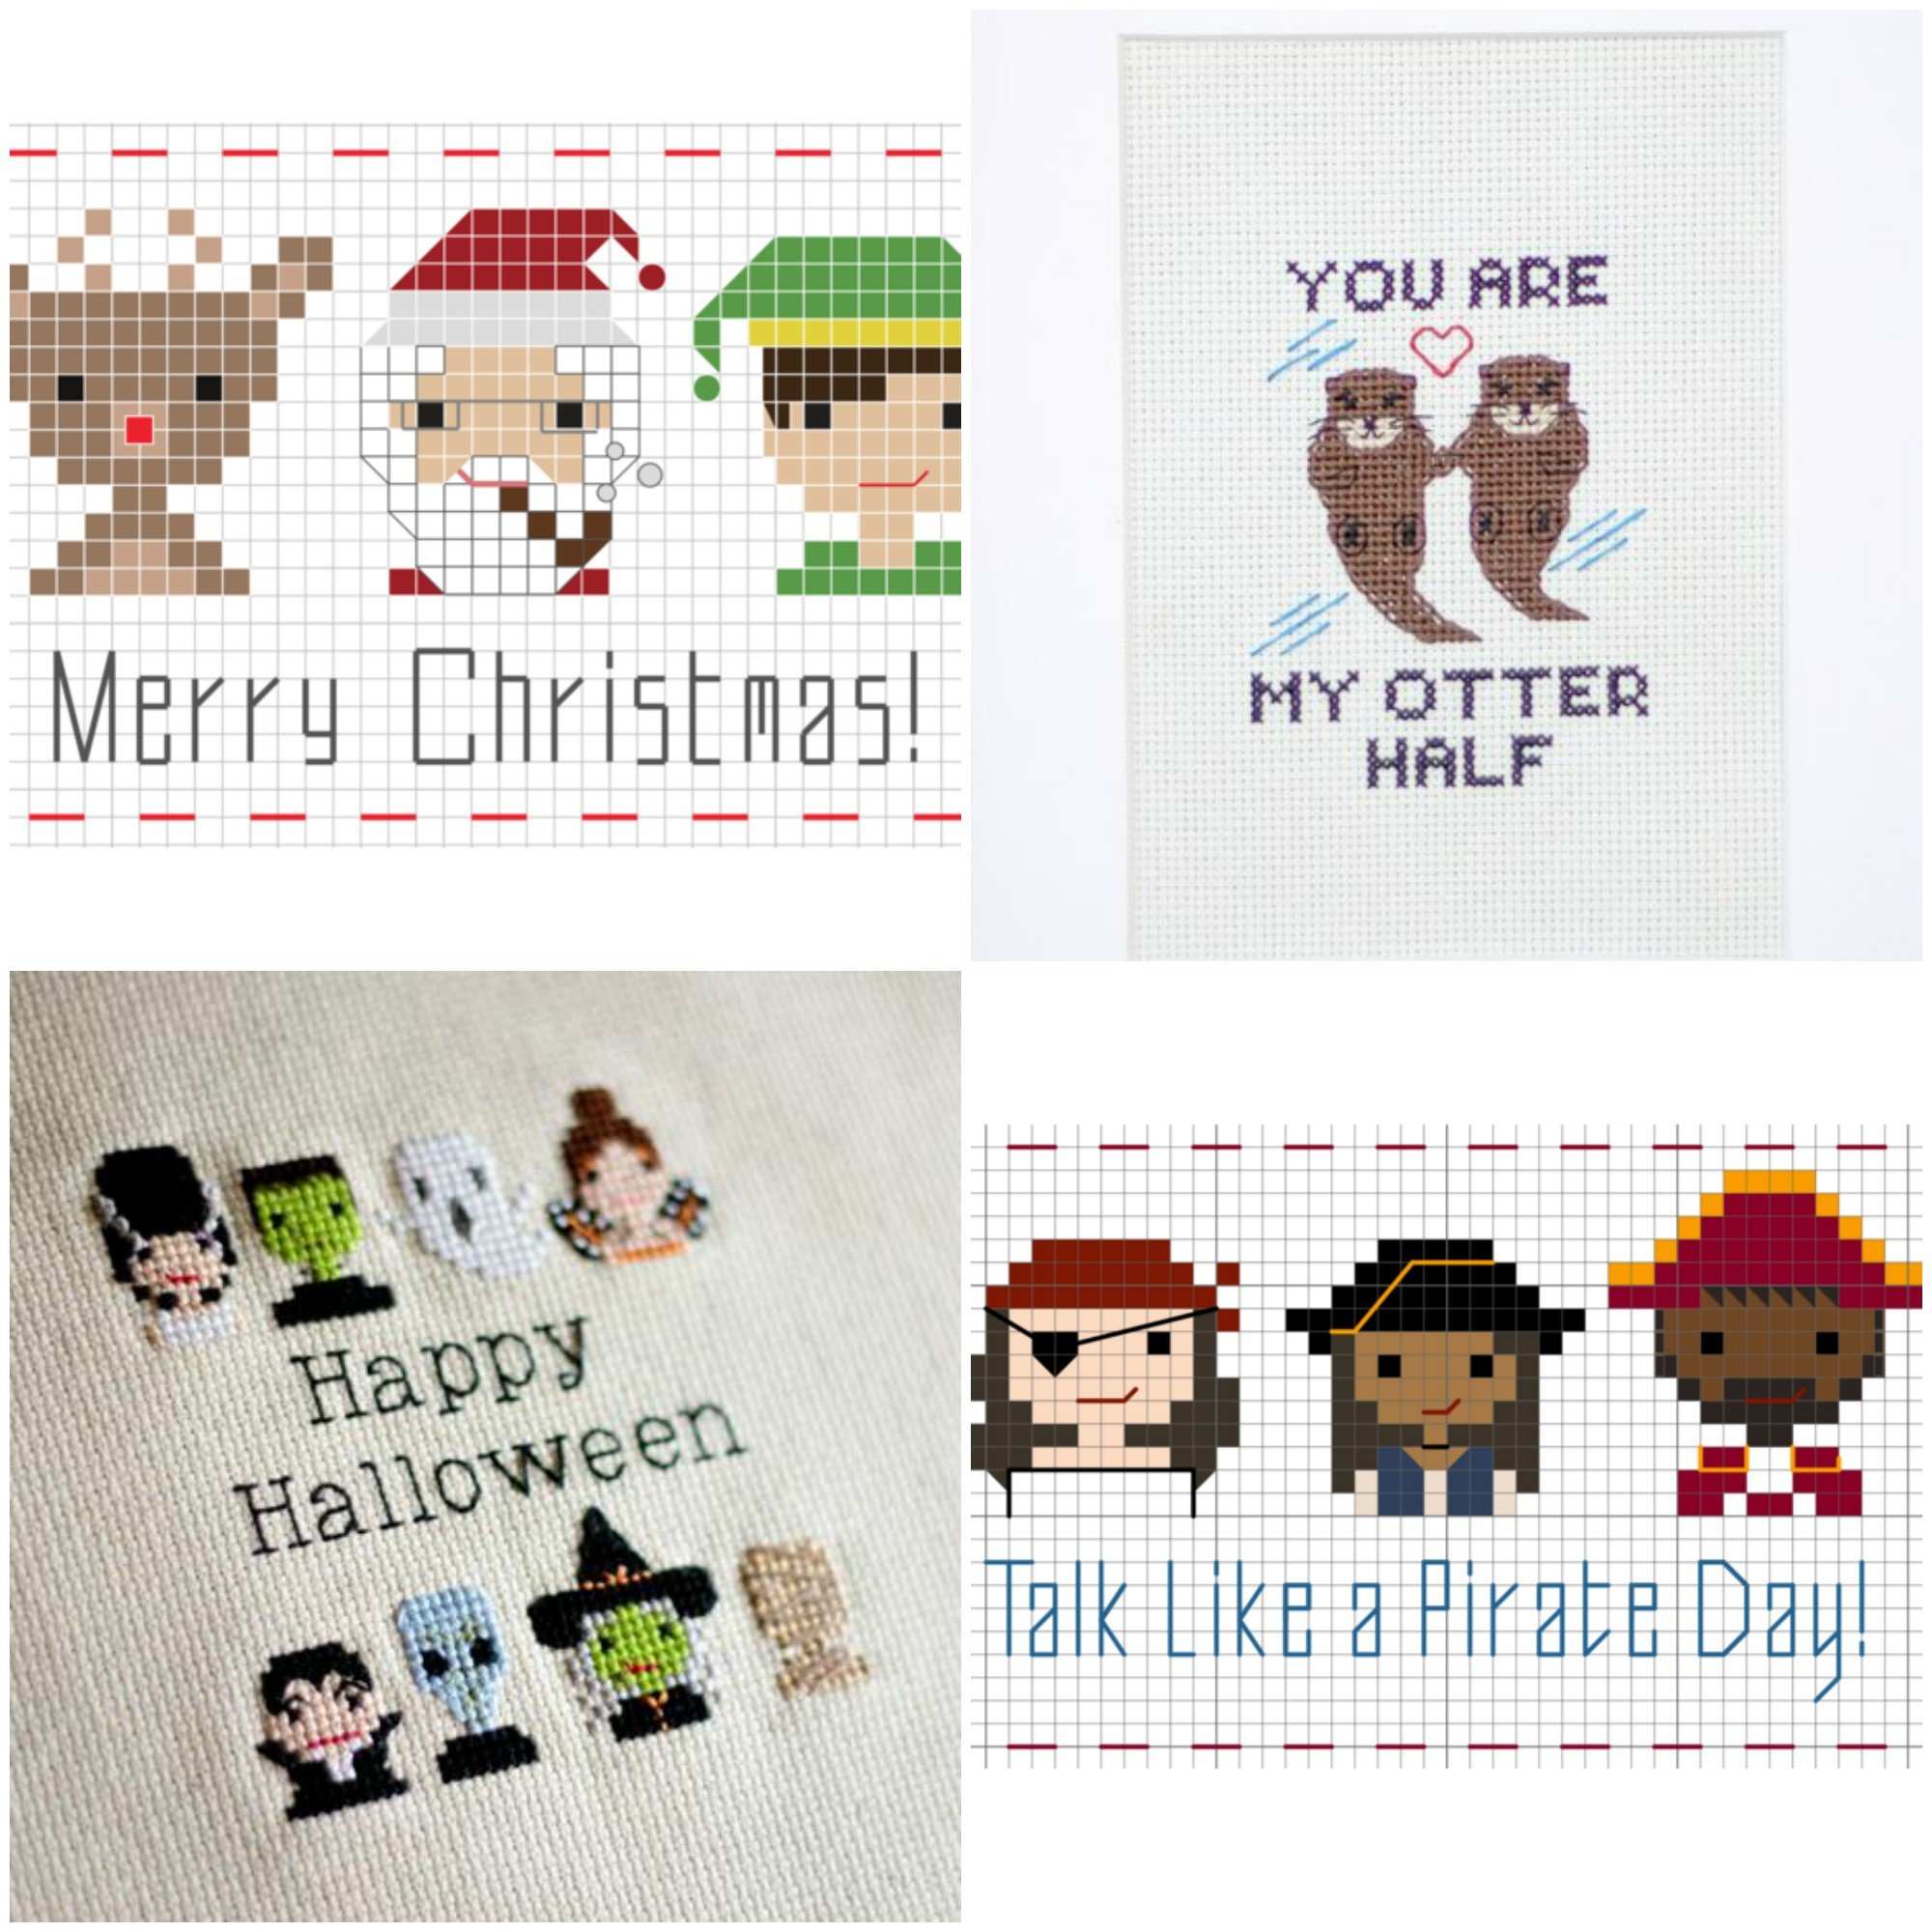 Free cross stitch patterns for Christmas, Halloween and other holidays!